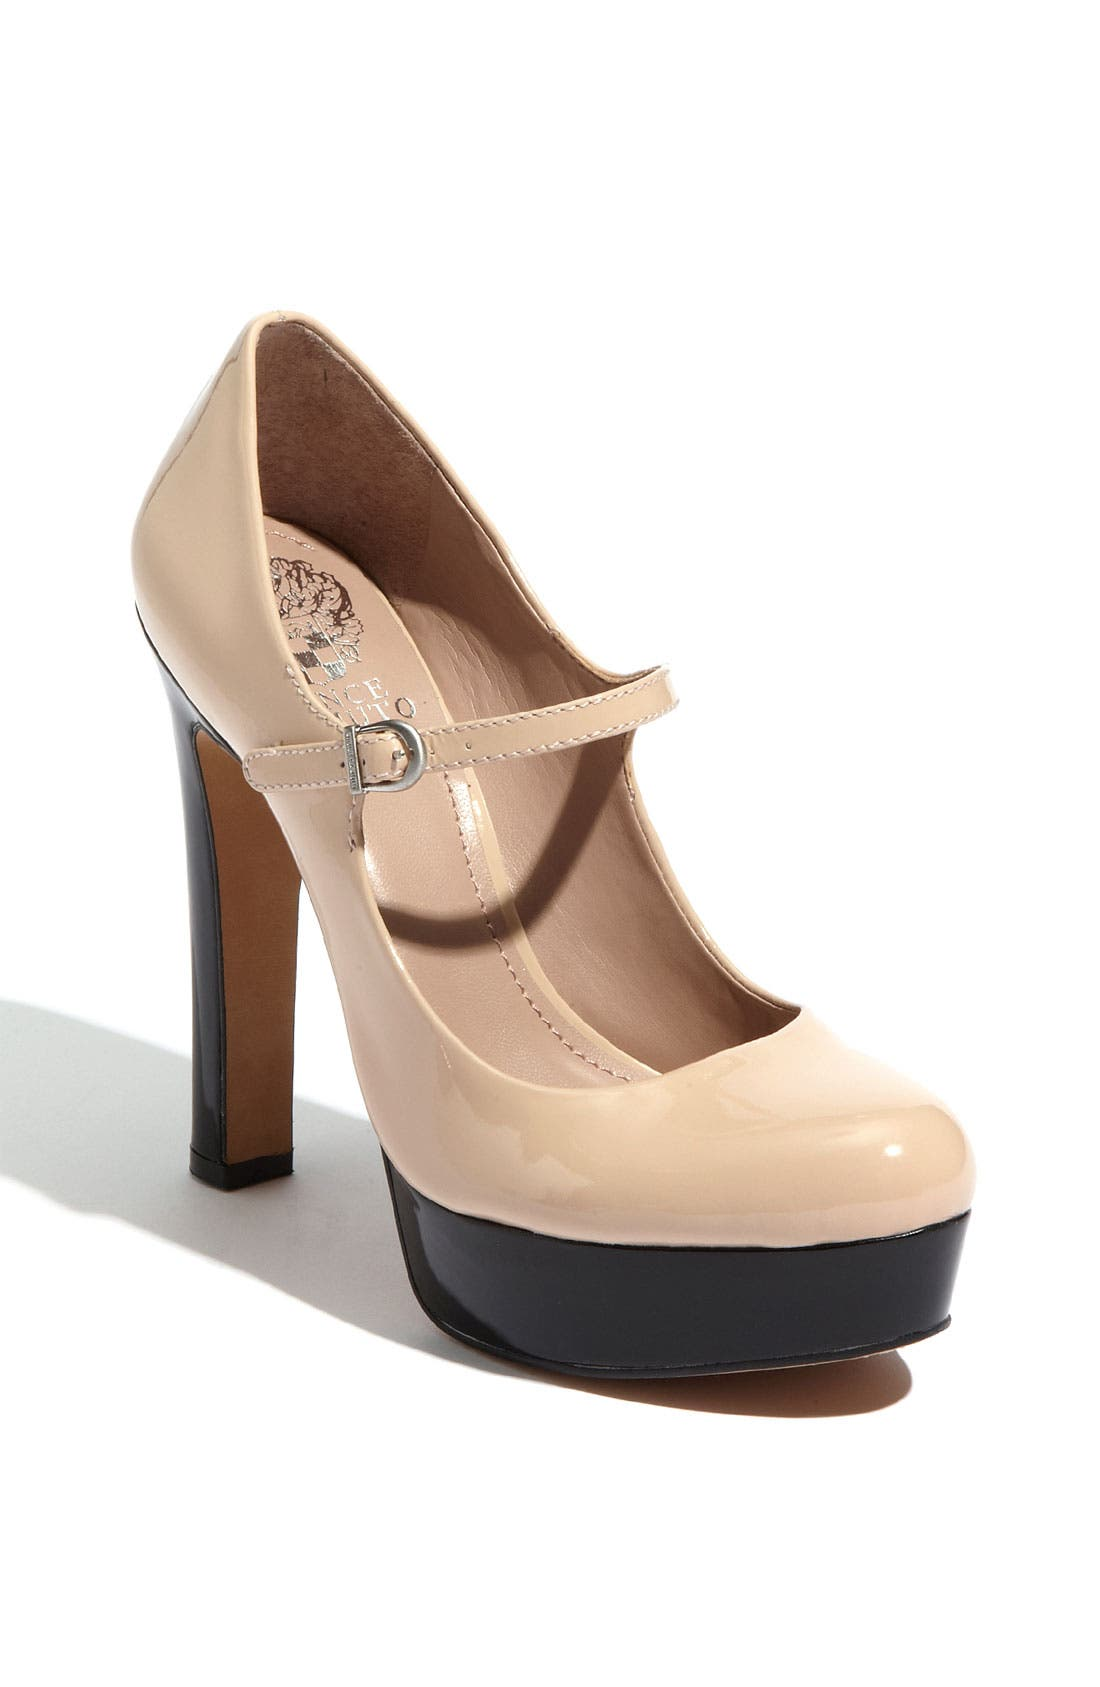 Main Image - Vince Camuto 'Jasper' Mary Jane Pump